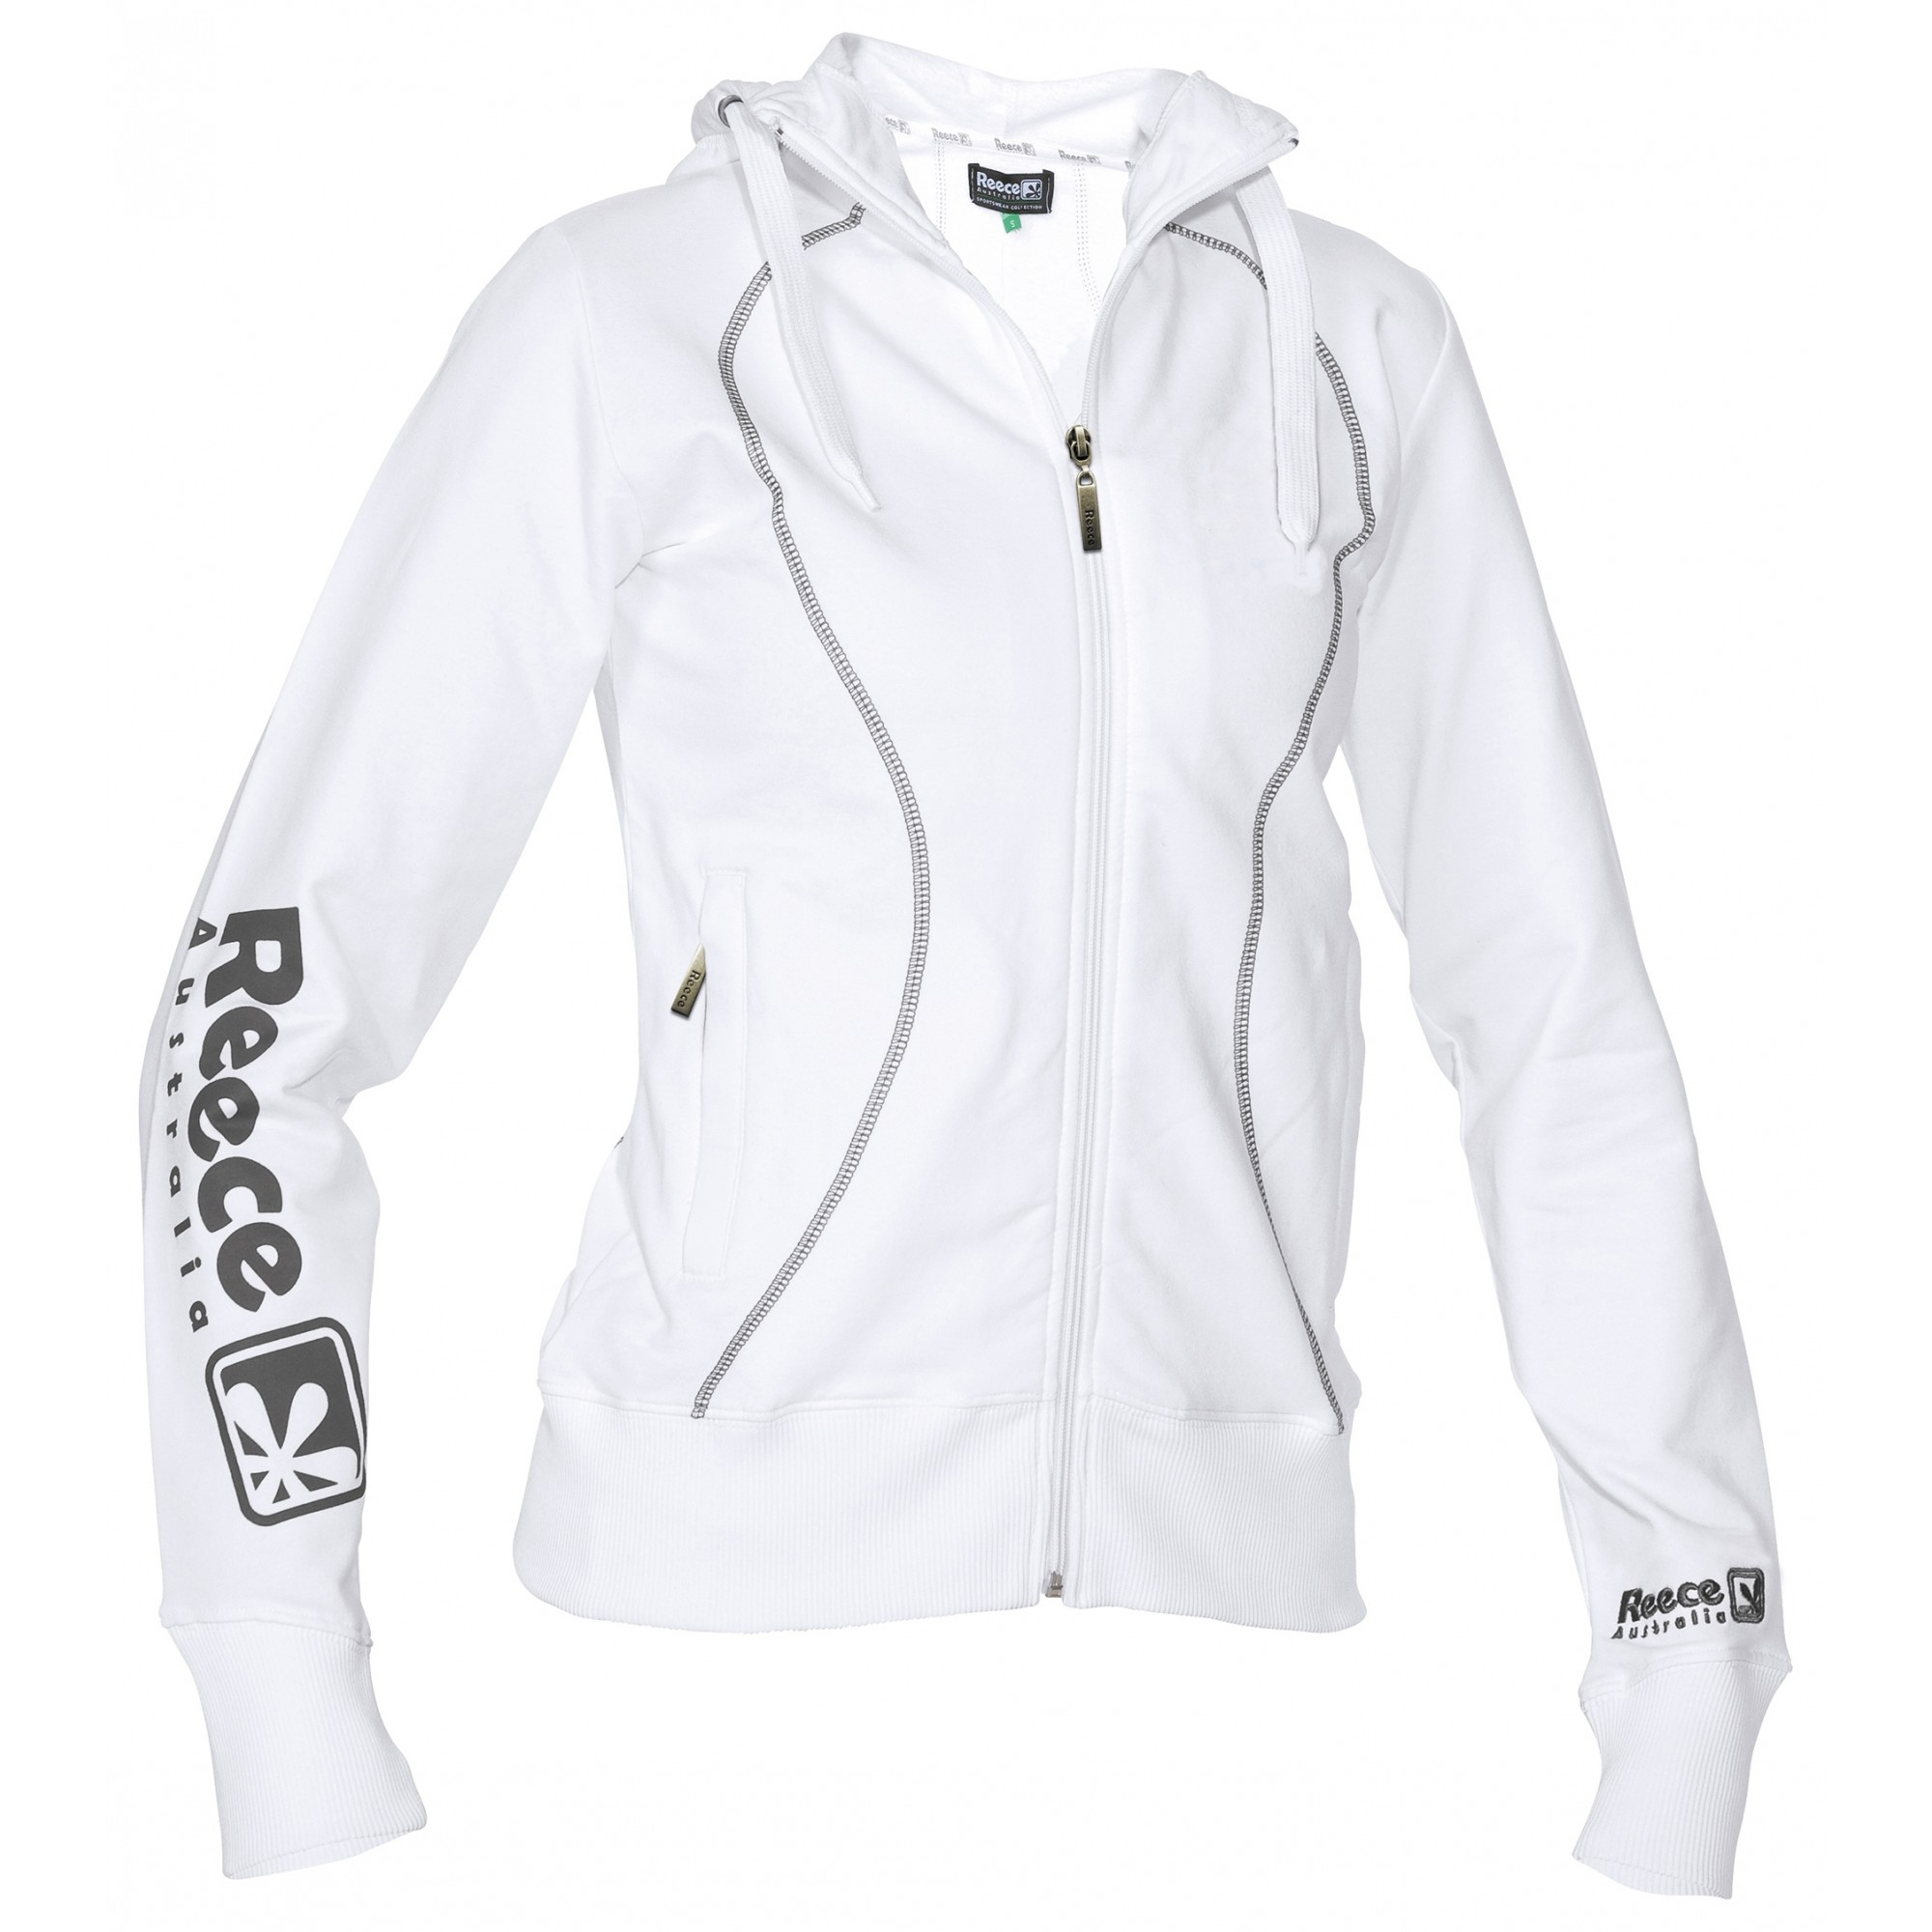 Reece Hooded Sweat Full Zip ladies Wit SR - Online bestellen